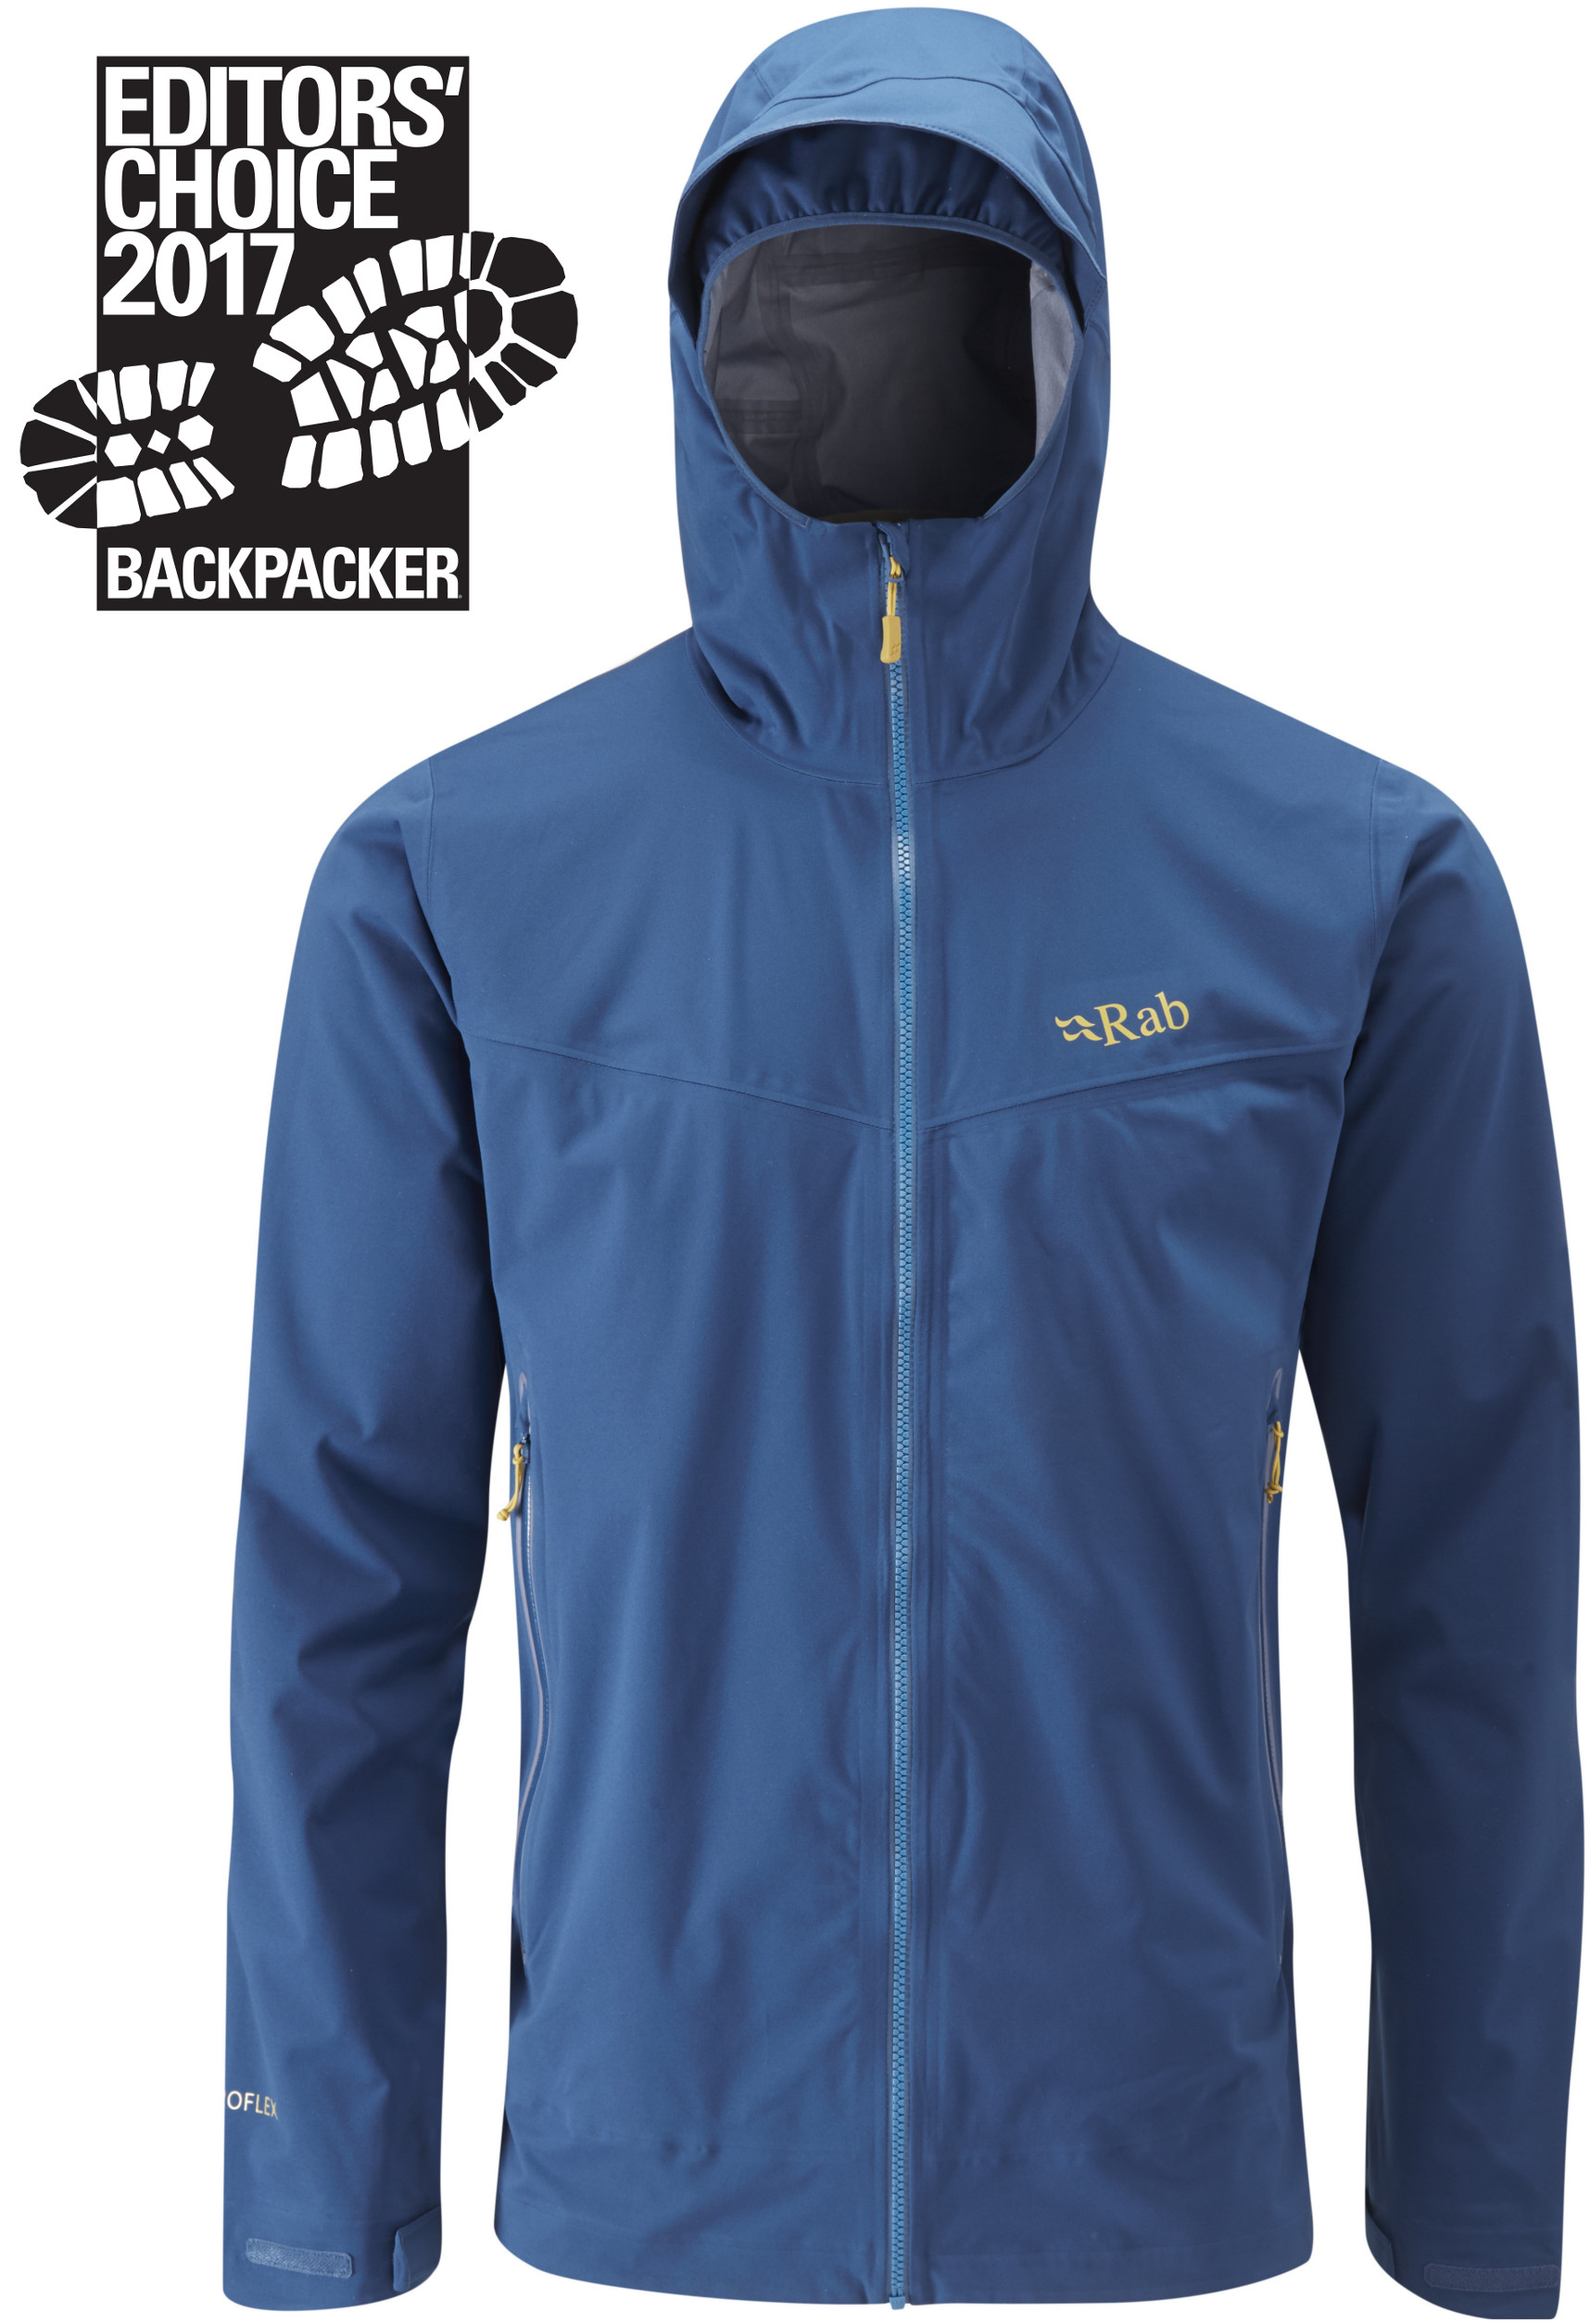 9ecf93d5 Rab Kinetic Plus Jacket - Mens, Jacket Style: Lightweight Softshell w/ Free  Shipping — 19 models